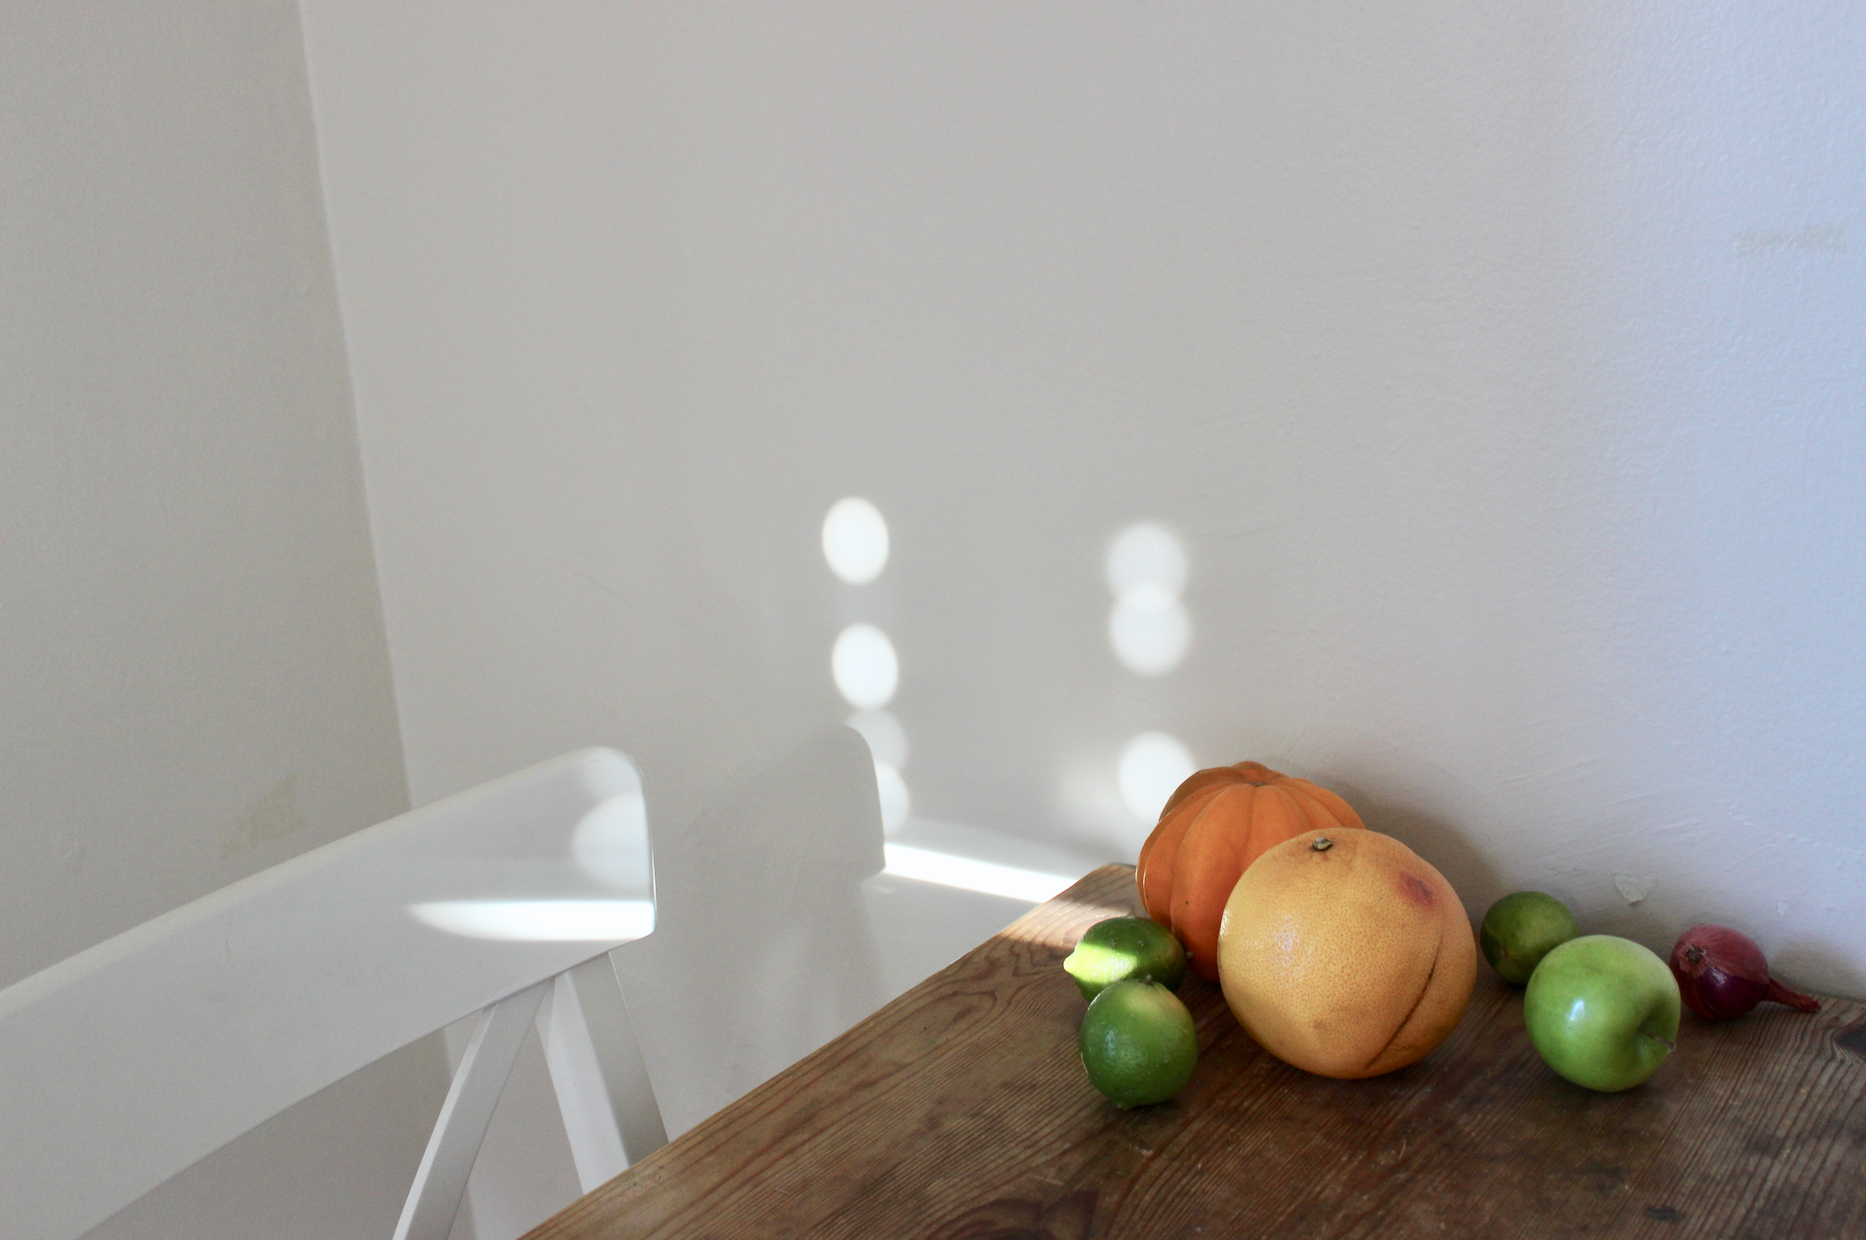 Imperfect produce | Litterless